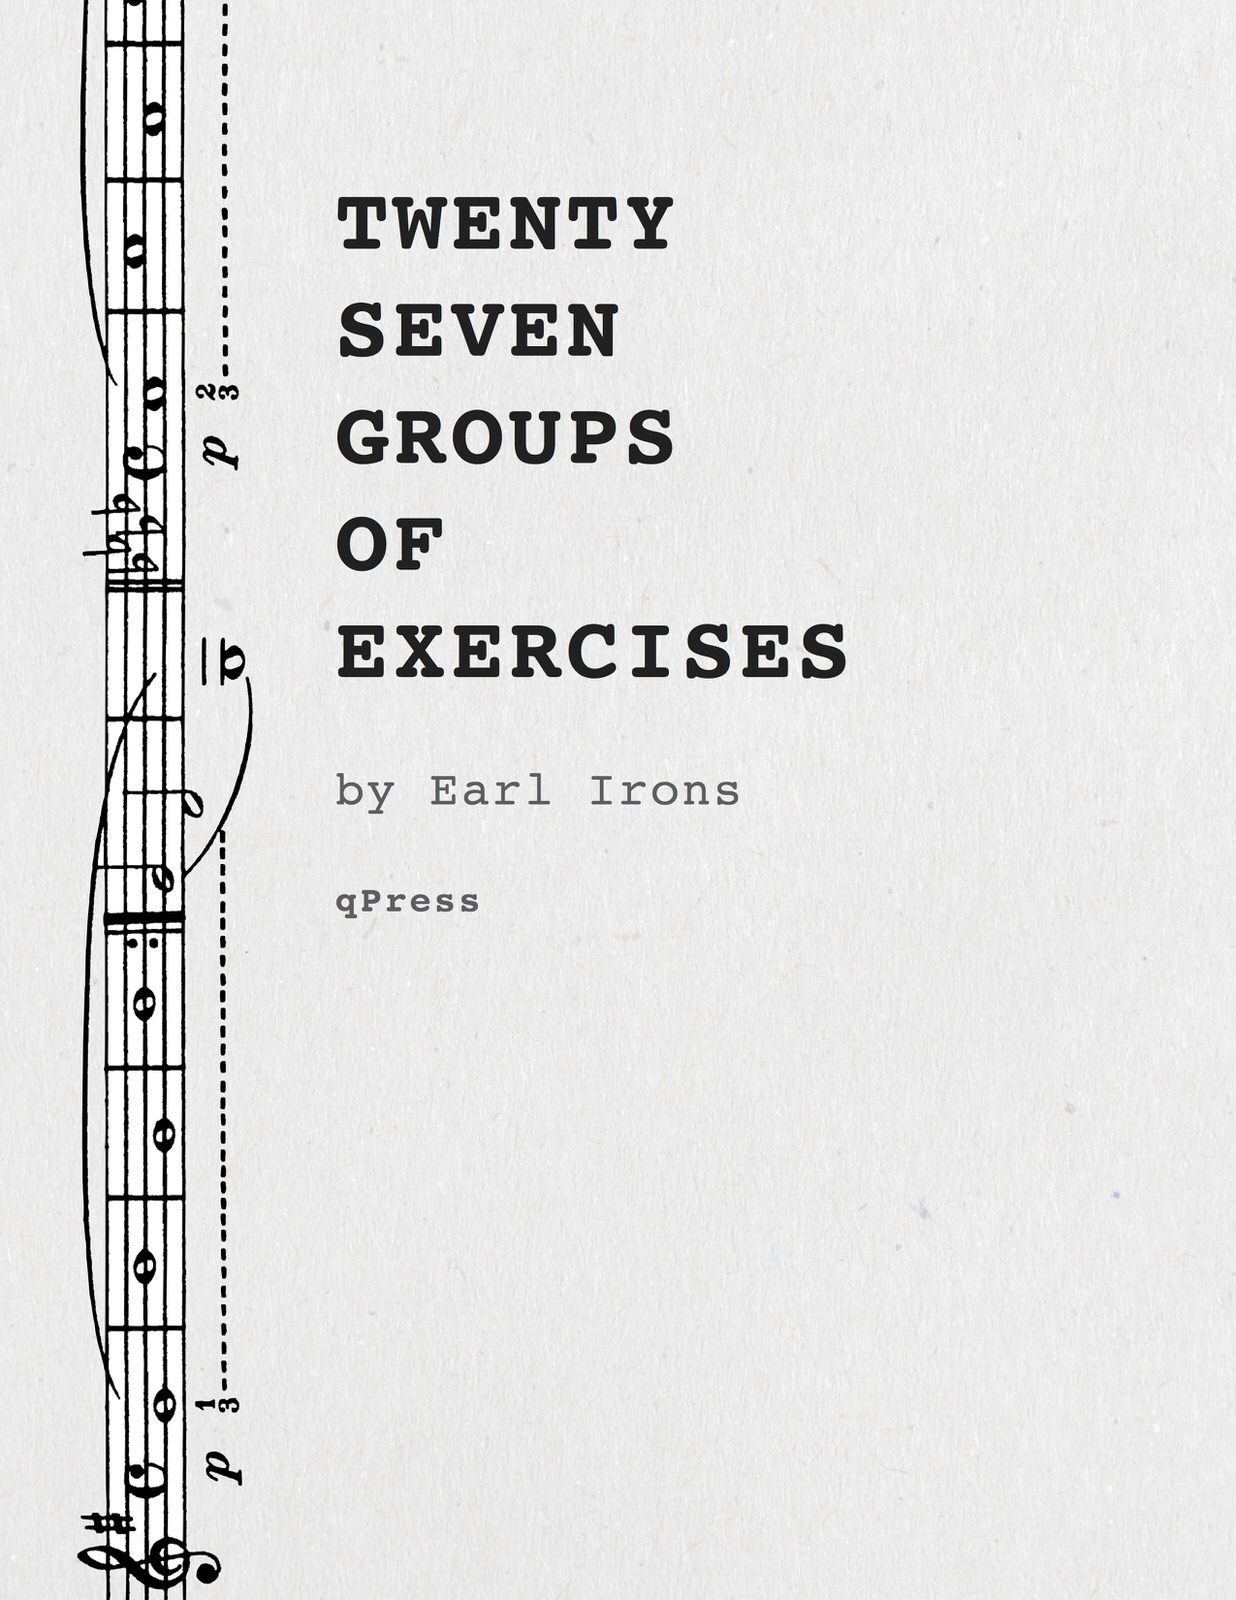 Irons 27 Groups of Exercises p01 1 27 groups of exercises by irons, earl qpress